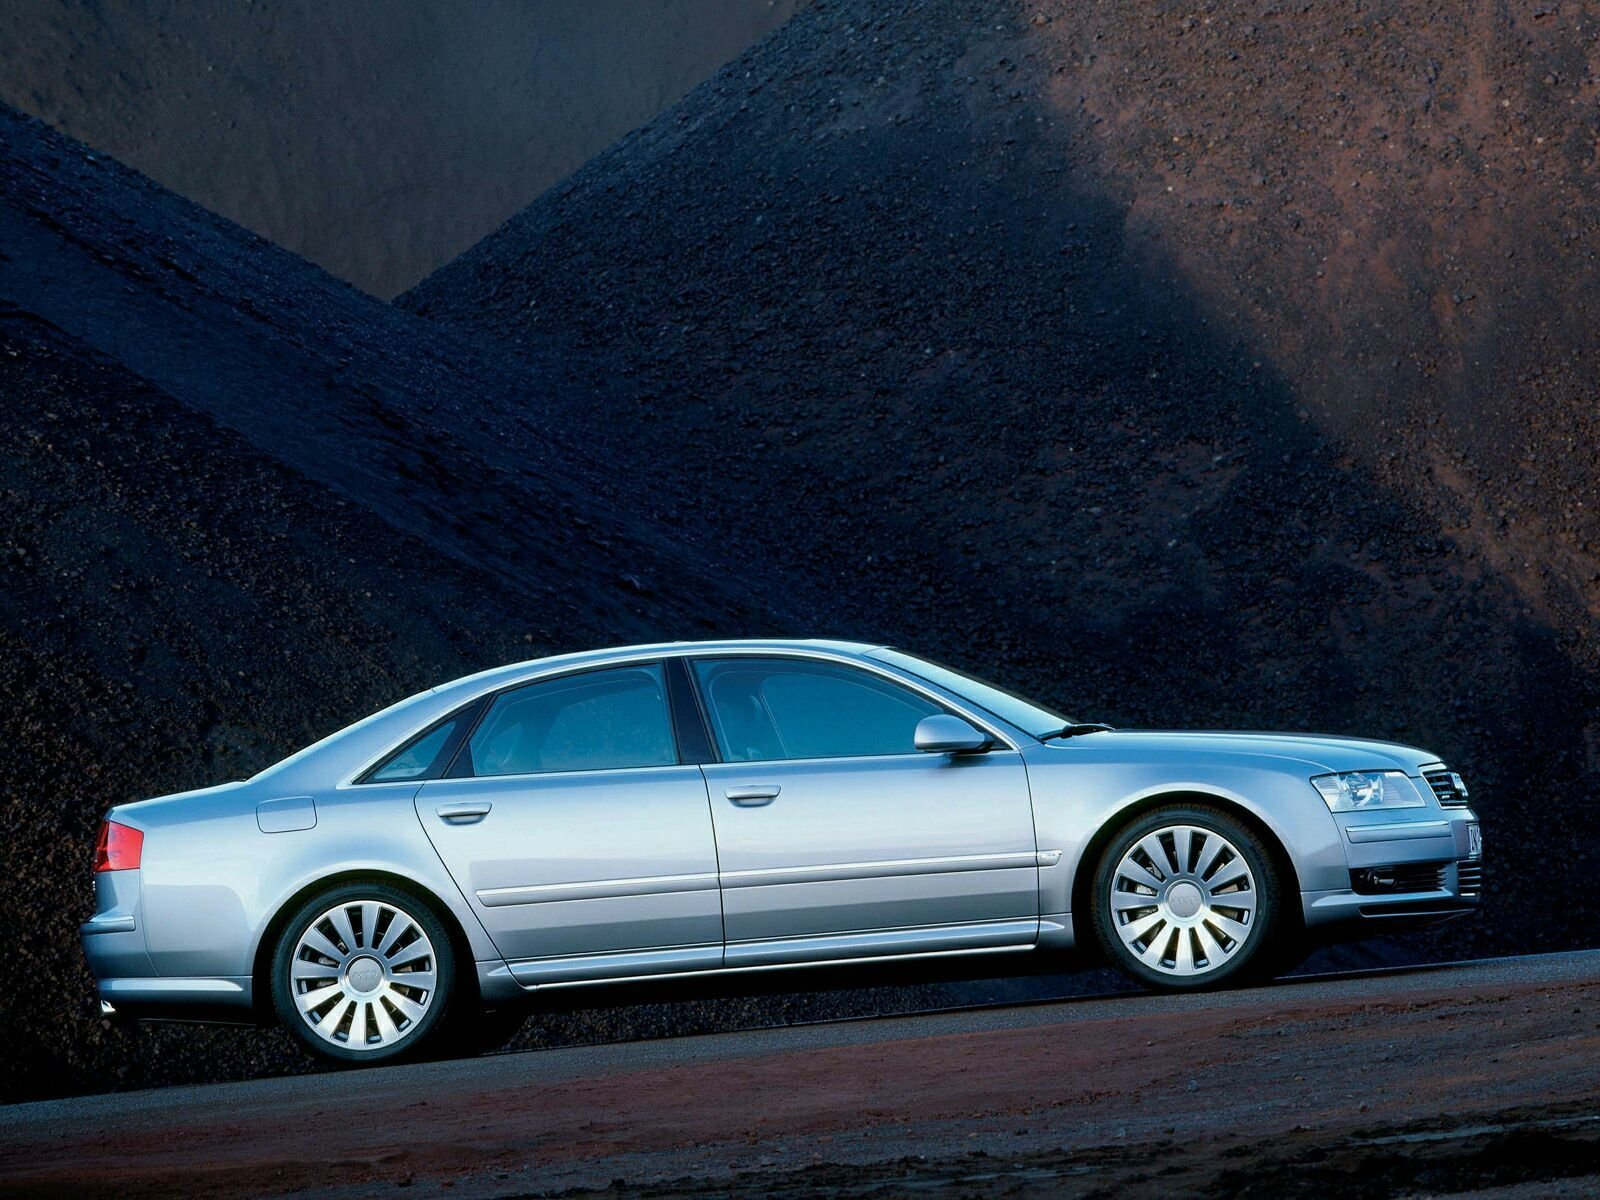 2004 audi a8 picture 30036 car review top speed. Black Bedroom Furniture Sets. Home Design Ideas